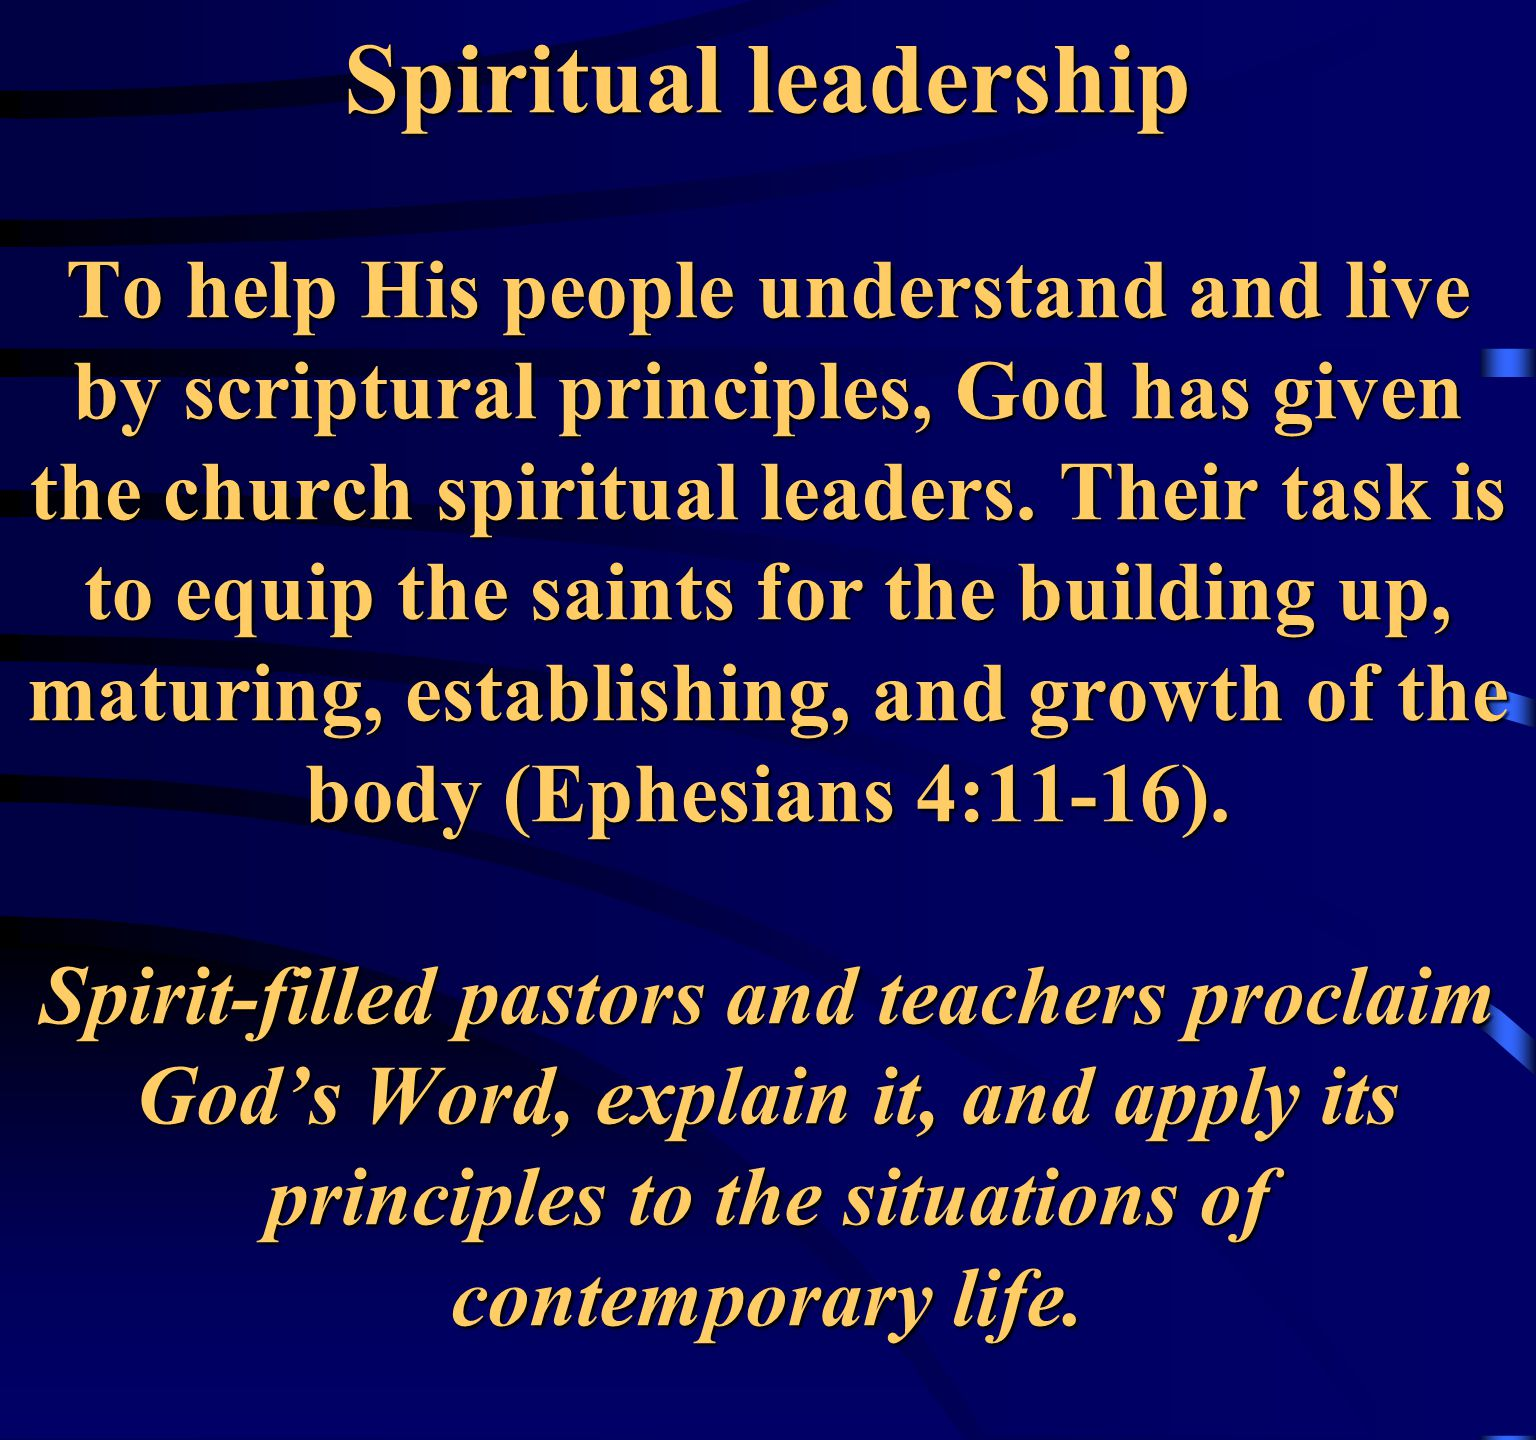 Spiritual leadership To help His people understand and live by scriptural principles, God has given the church spiritual leaders.